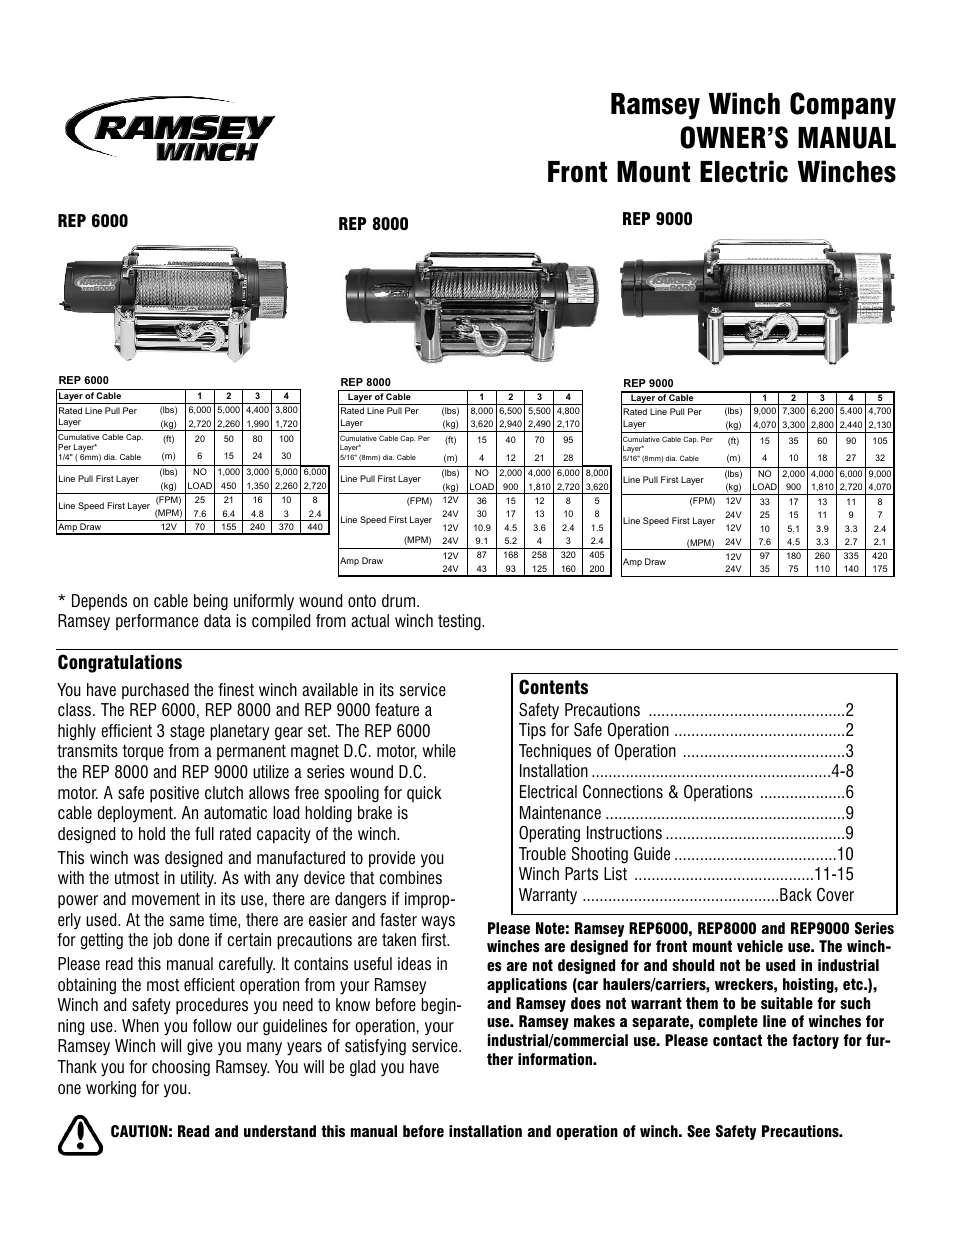 ramsey winch rep 6000_8000_9000 current page1?resize=665%2C861 ramsey winch solenoid wiring diagram double 4 wire solenoid 4 wheeler winch wiring diagram at edmiracle.co